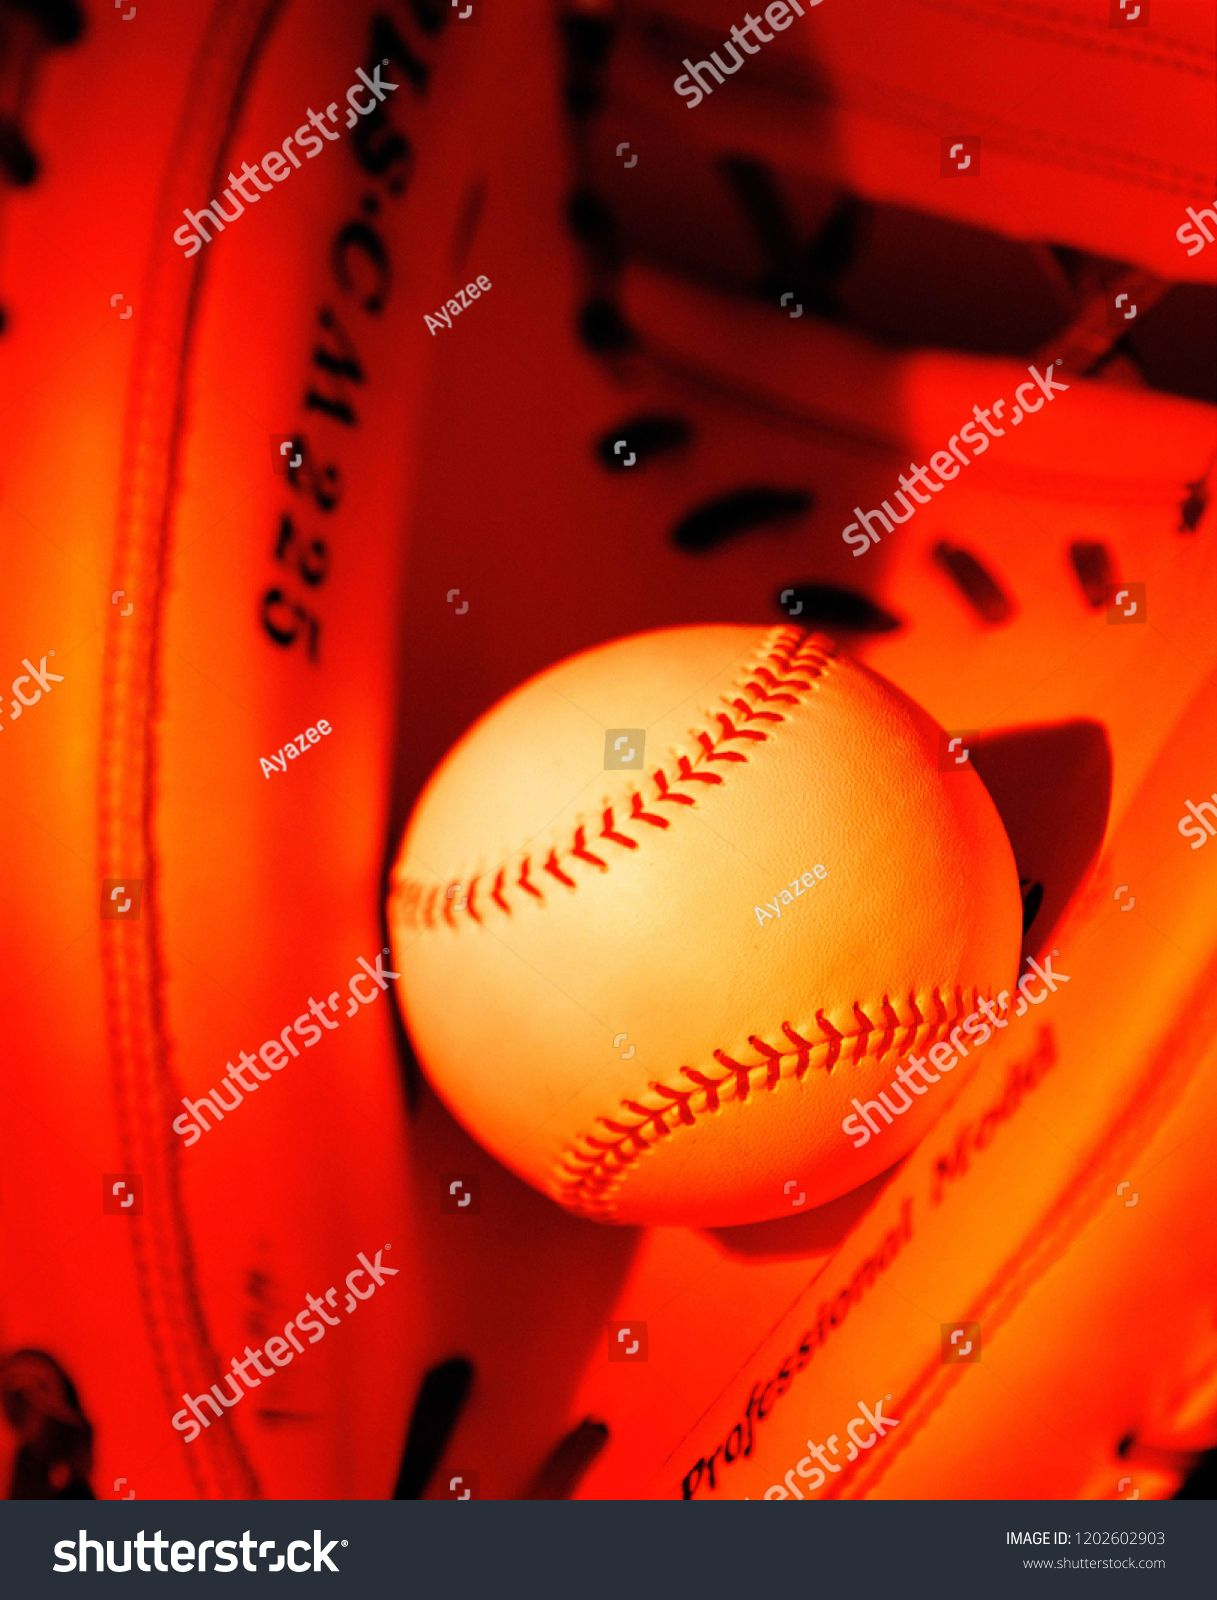 Sports Tools And Equipments Ad Ad Sports Tools Equipments Stock Photos Photo Editing Tools And Equipment